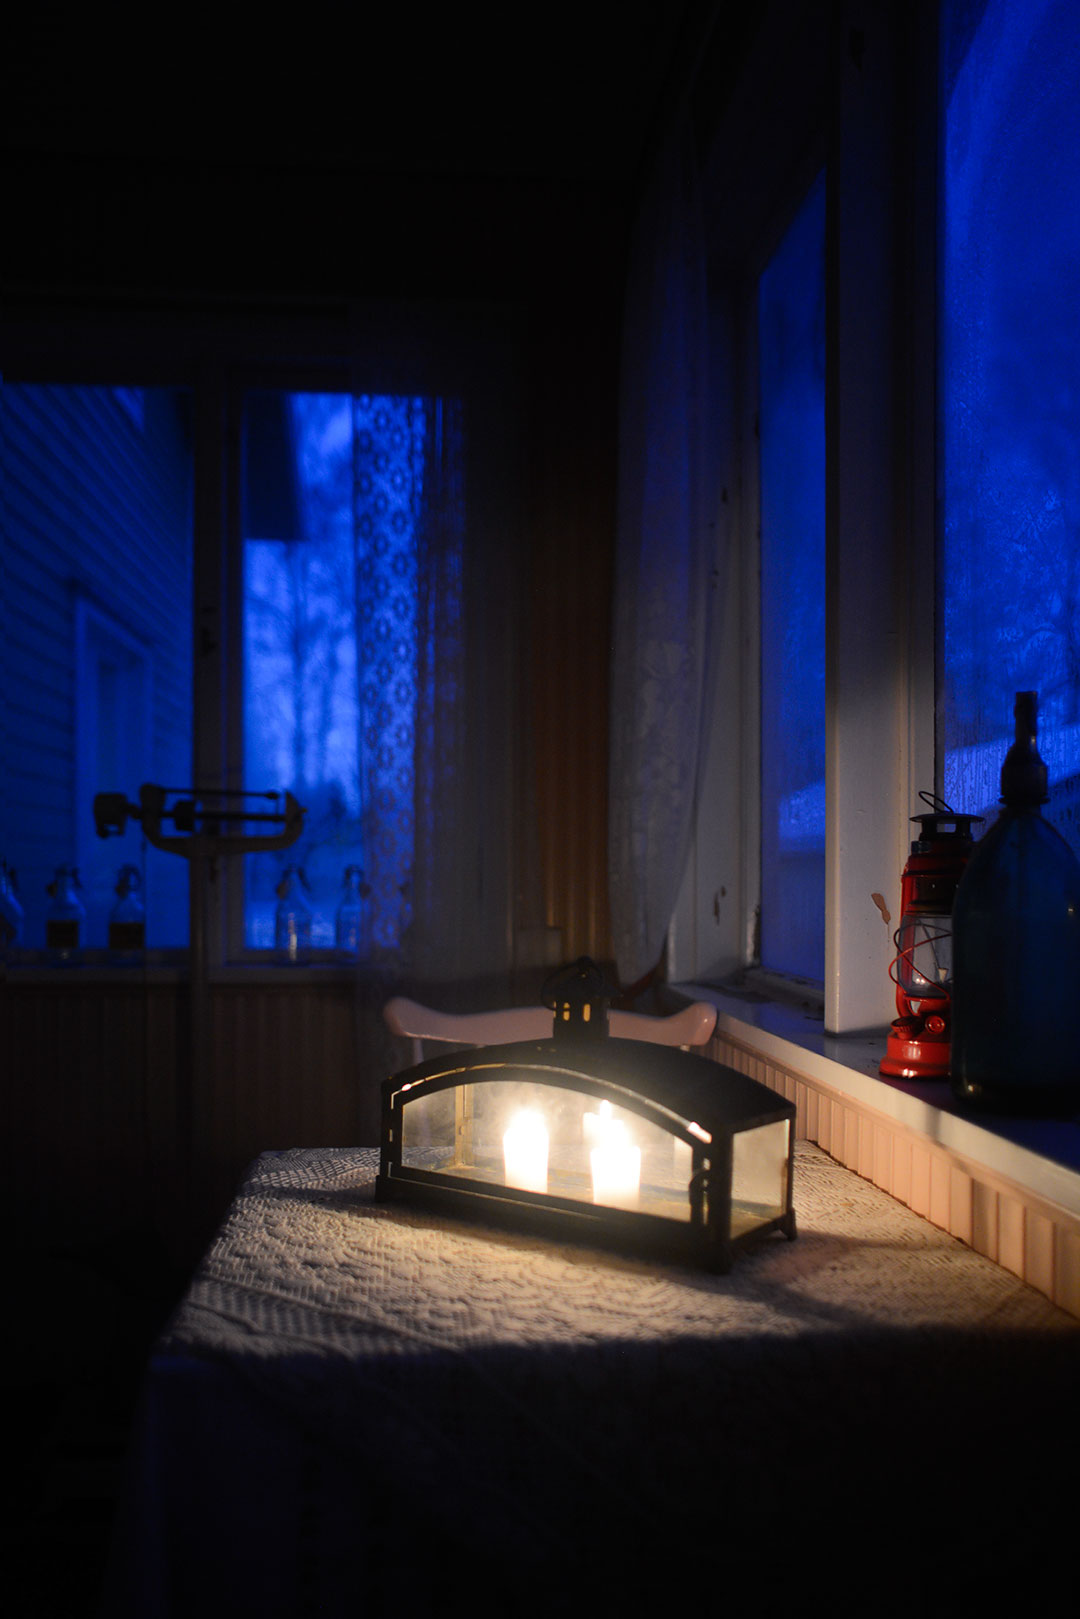 Blue hour and candle light